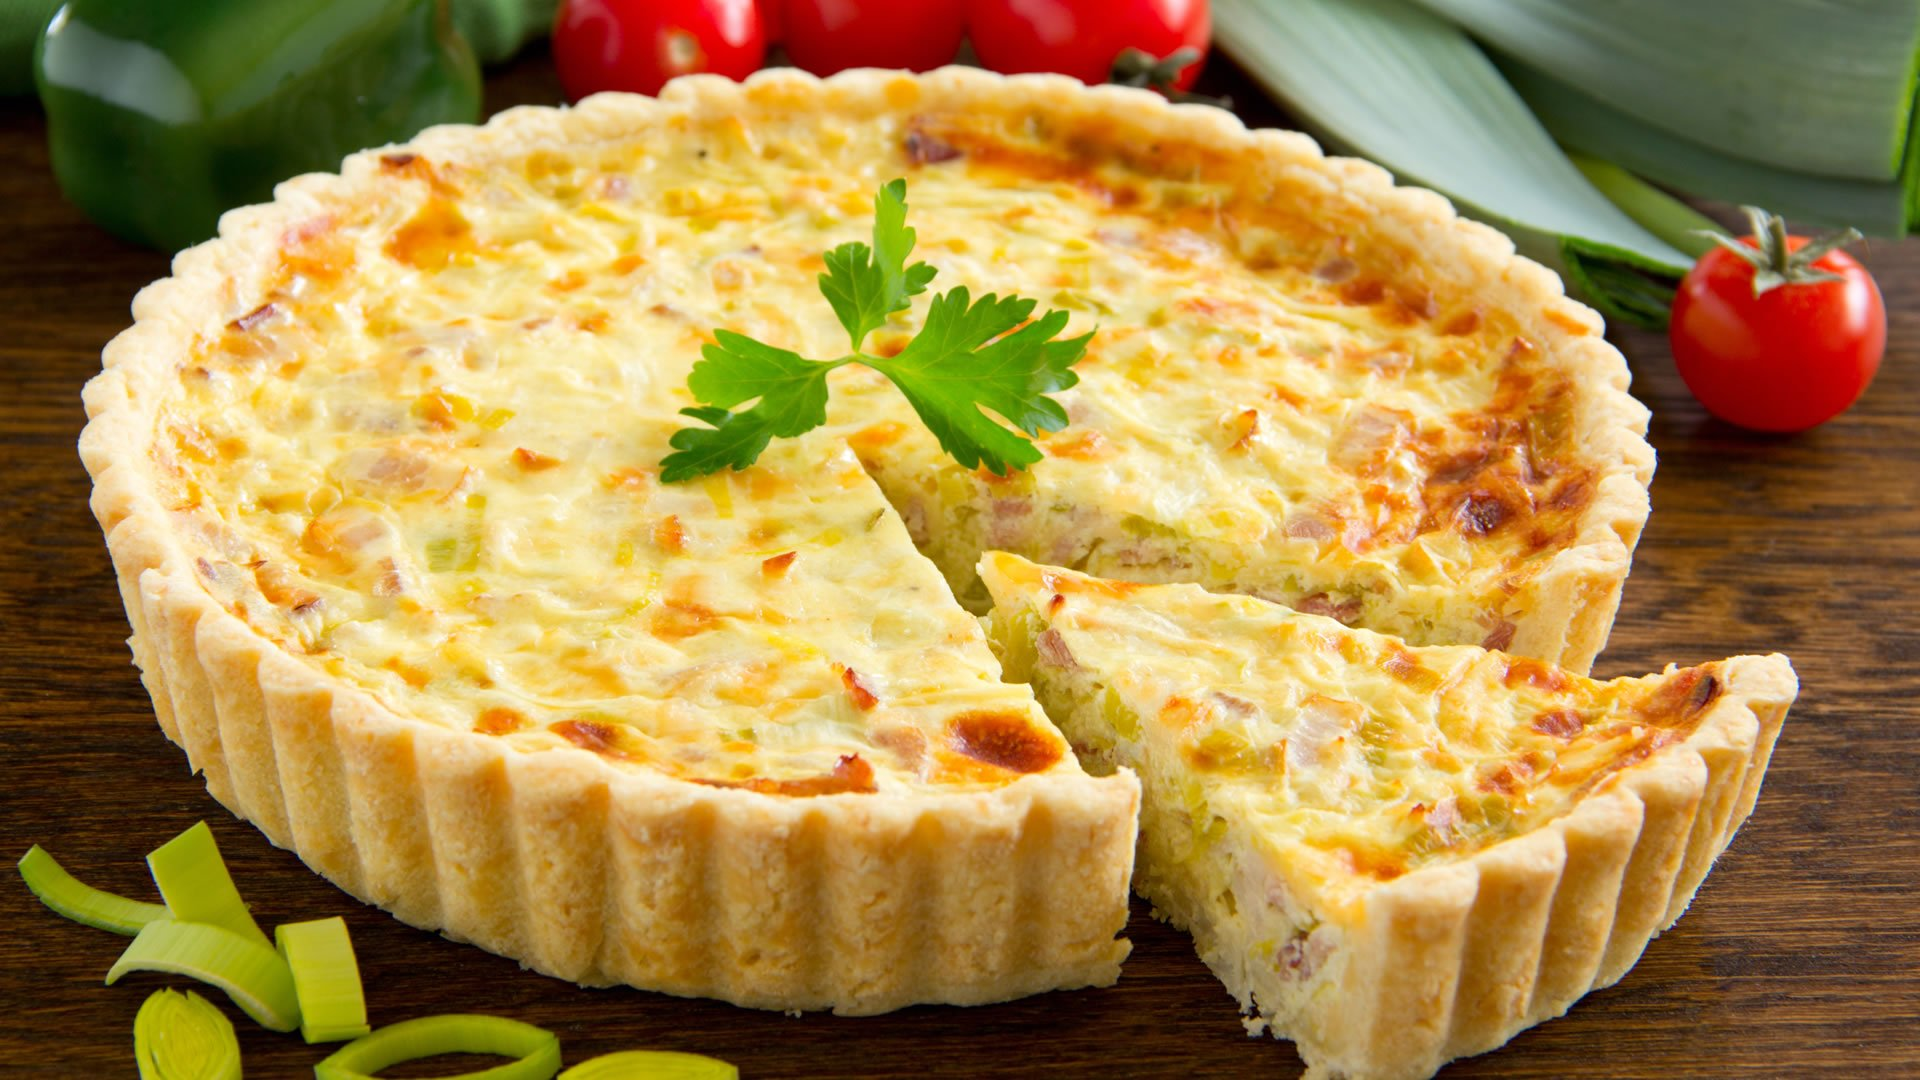 Quiche lorraine for Paris francia comida tipica